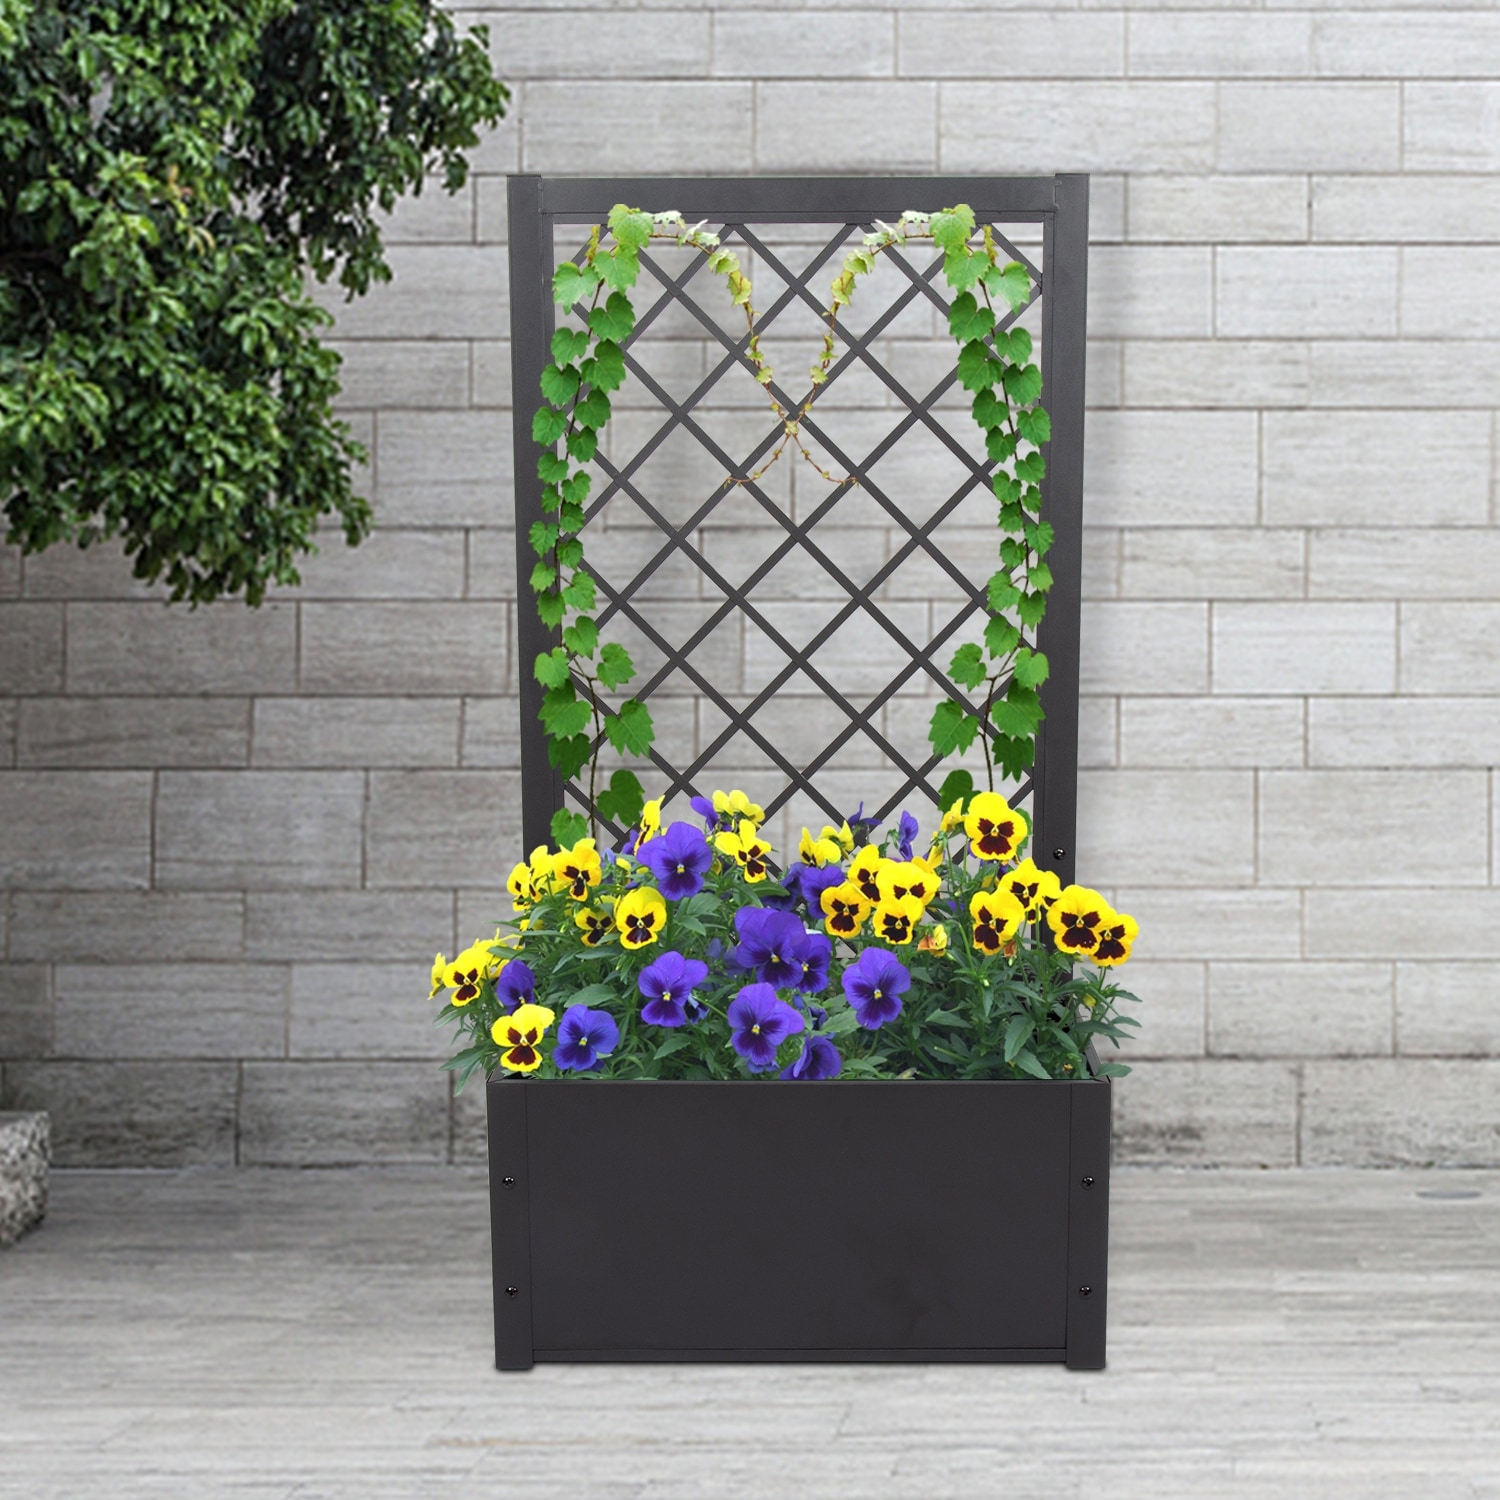 Kinbor Metal Raised Bed With Trellis Elevated Garden Planter Box For Yard Patio Free Standing Outdoor Container Bed Overstock 31677550